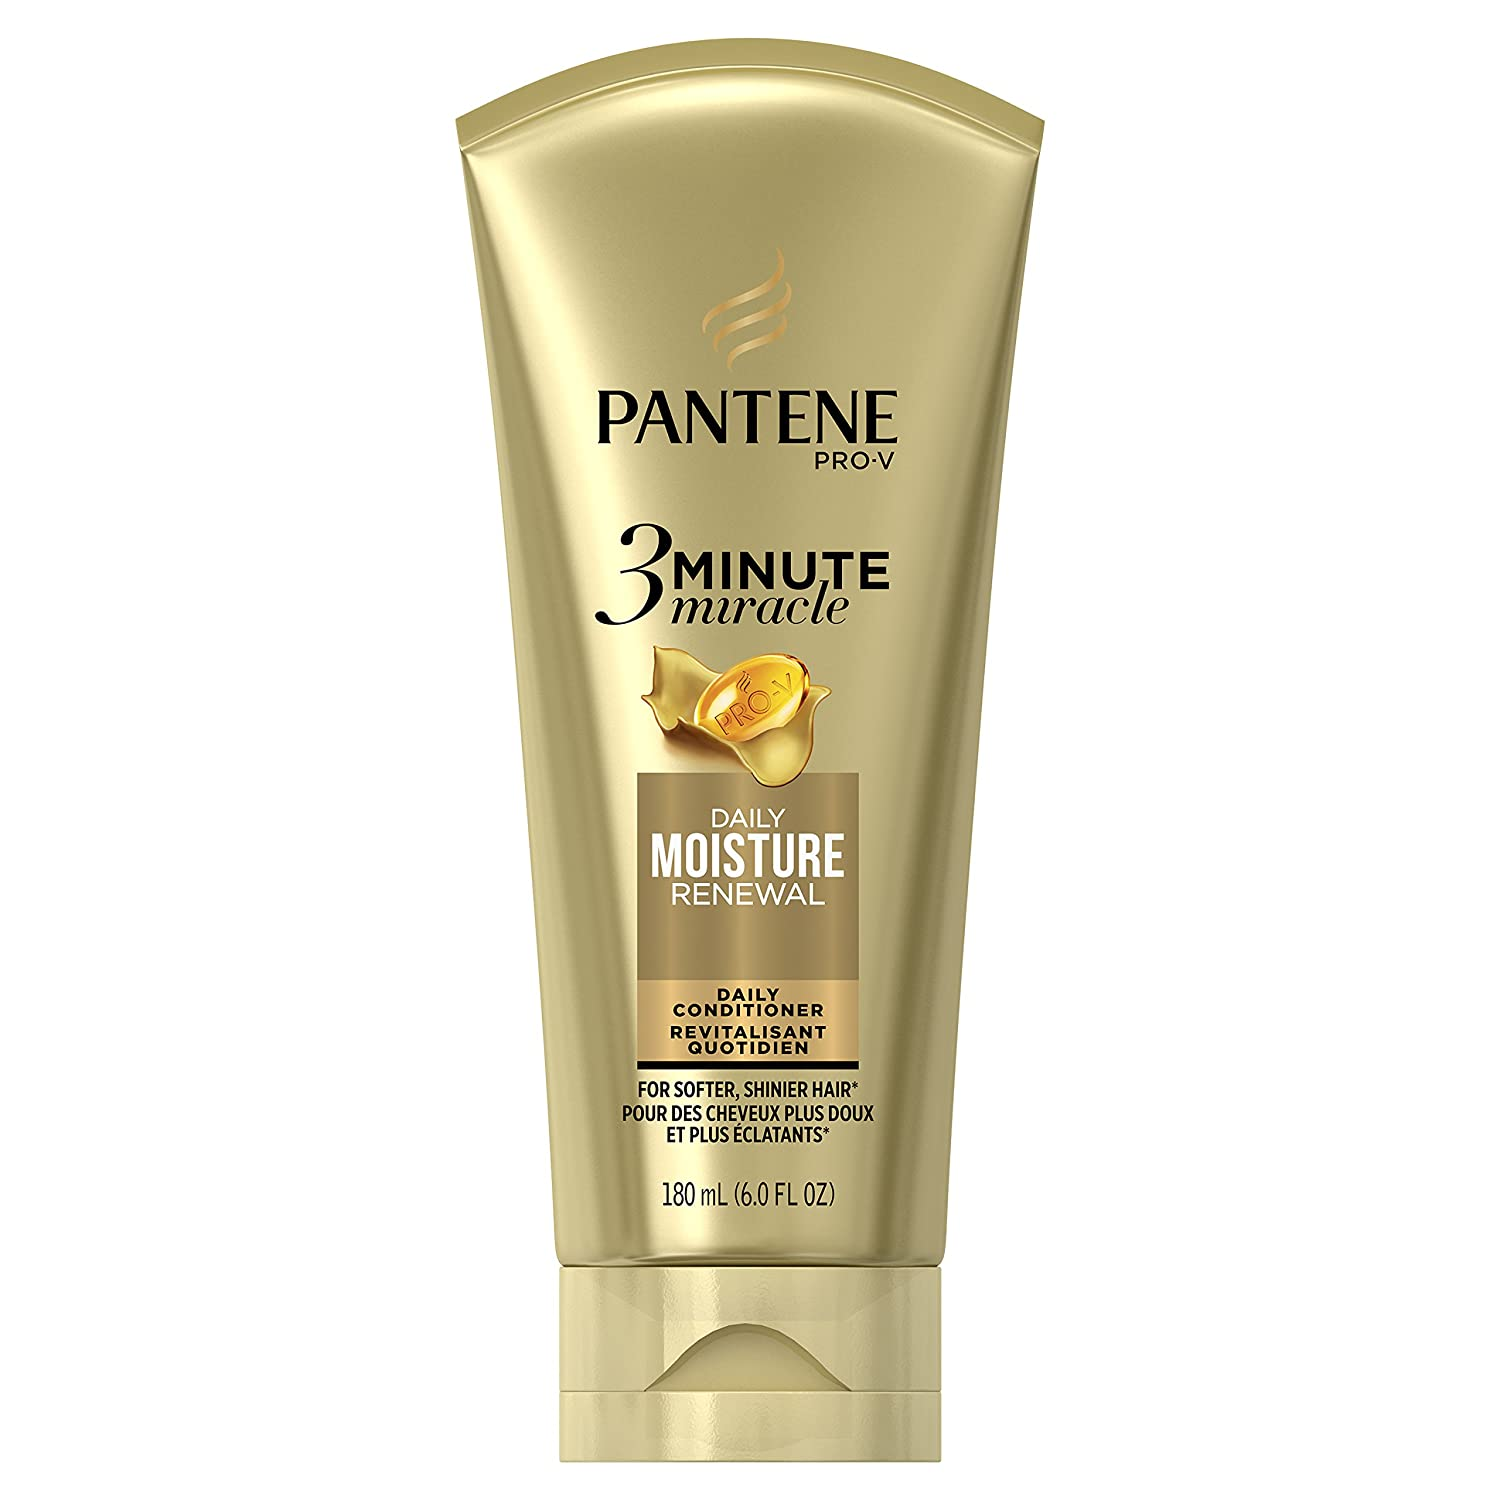 Pantene Pantene Daily Moisture Renewal 3 Minute Miracle Daily Conditioner, 6.0 fl oz, 6 Fl Oz